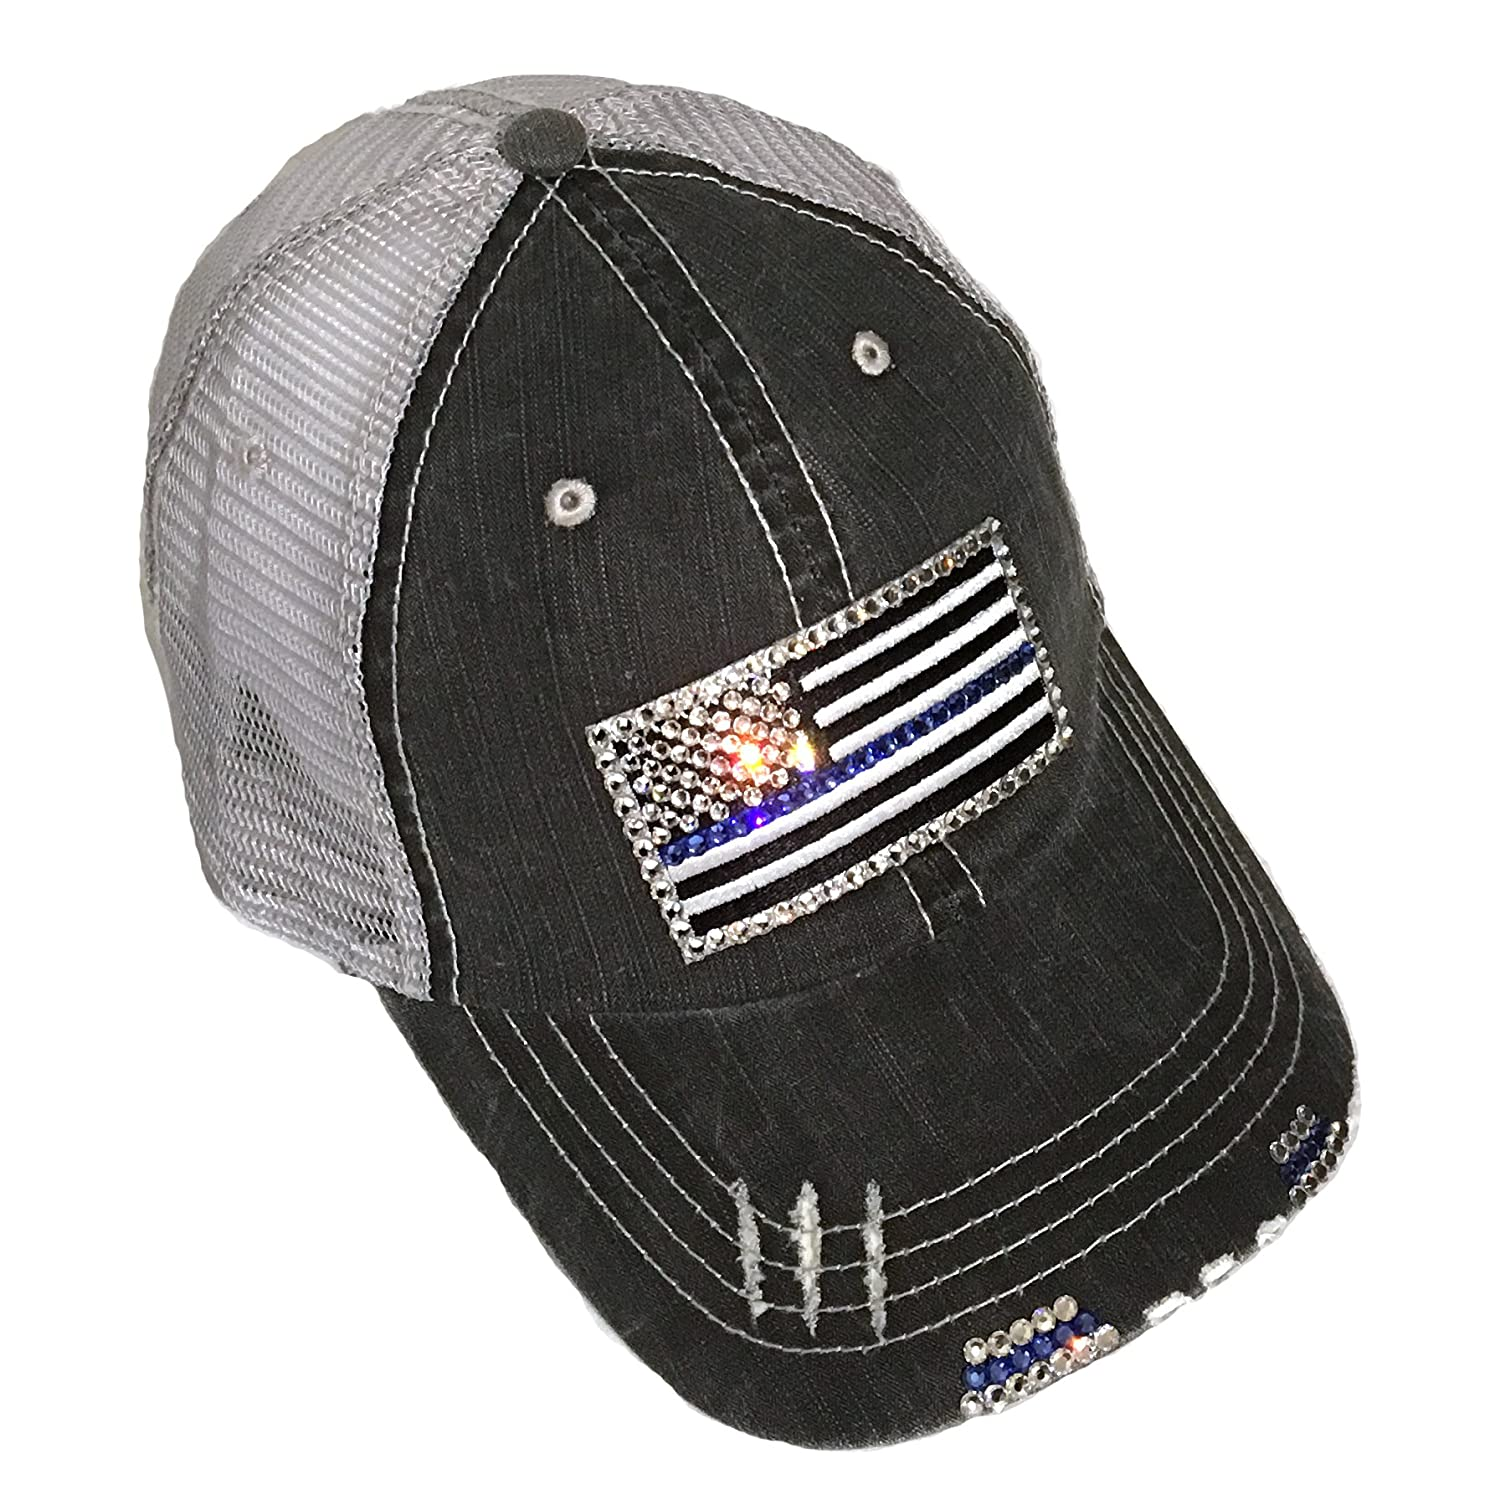 ad68e291ccd Thin Blue Line Flag Baseball Cap for Women Fitted Mesh Trucker Swarovski  Bling at Amazon Women s Clothing store